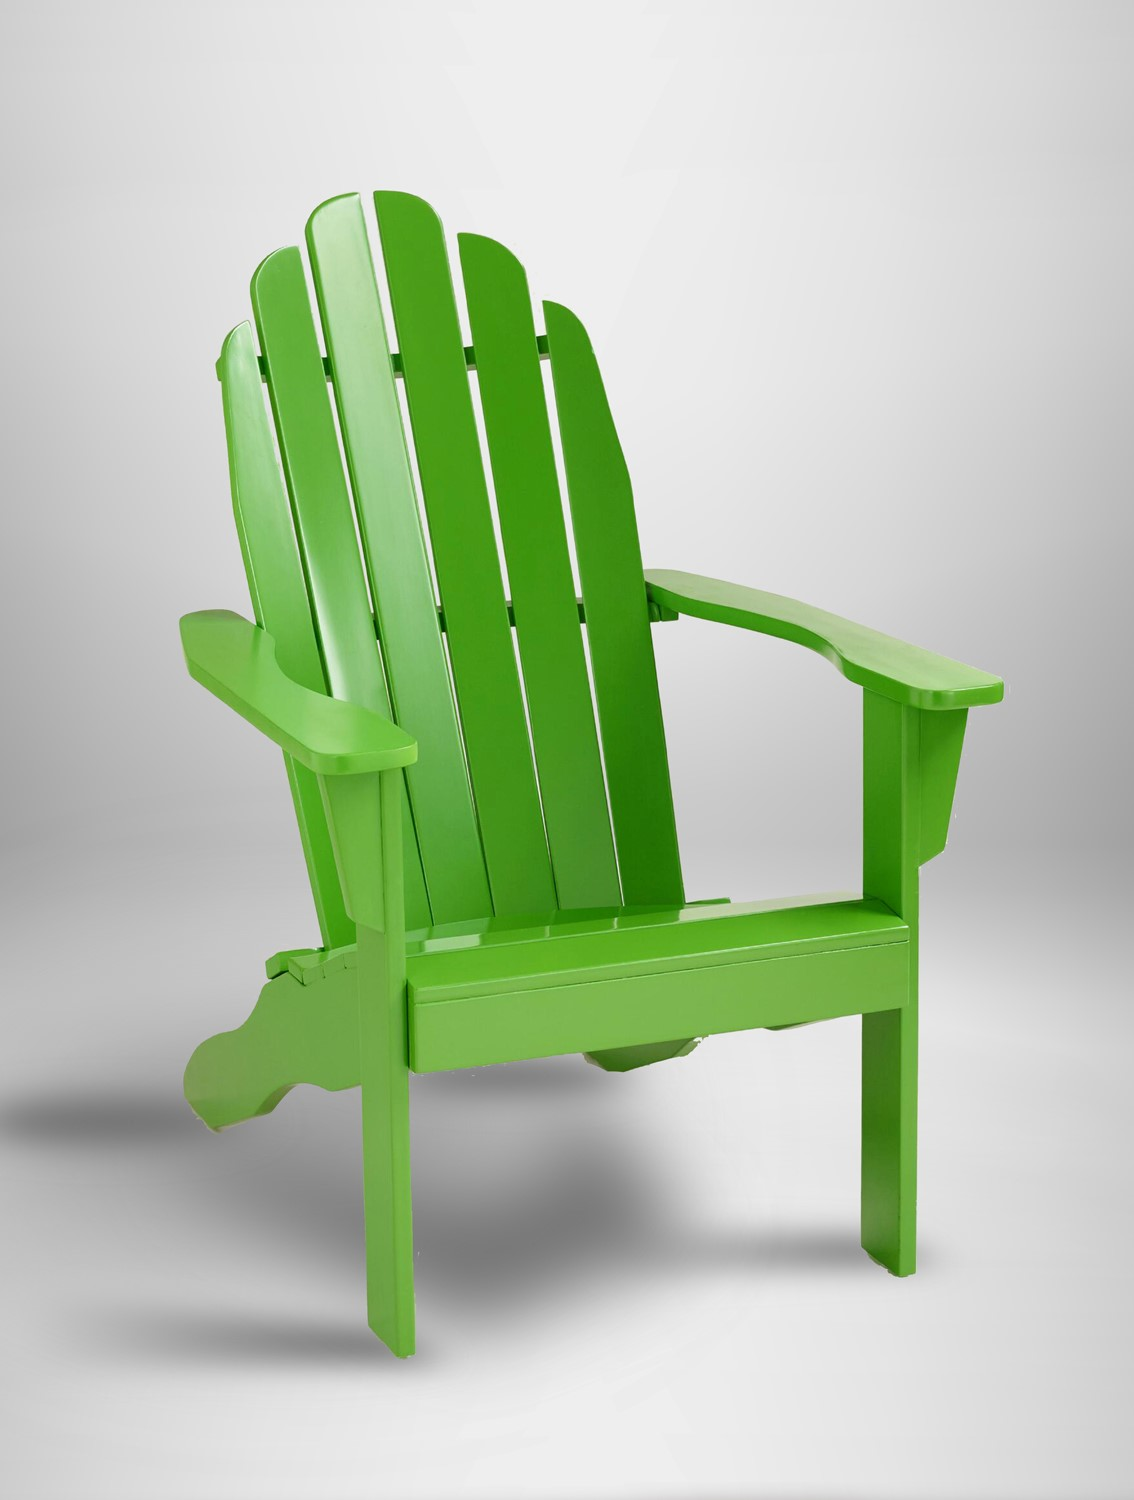 adirondack chairs portland oregon fishing chair with cooler green west coast event productions inc